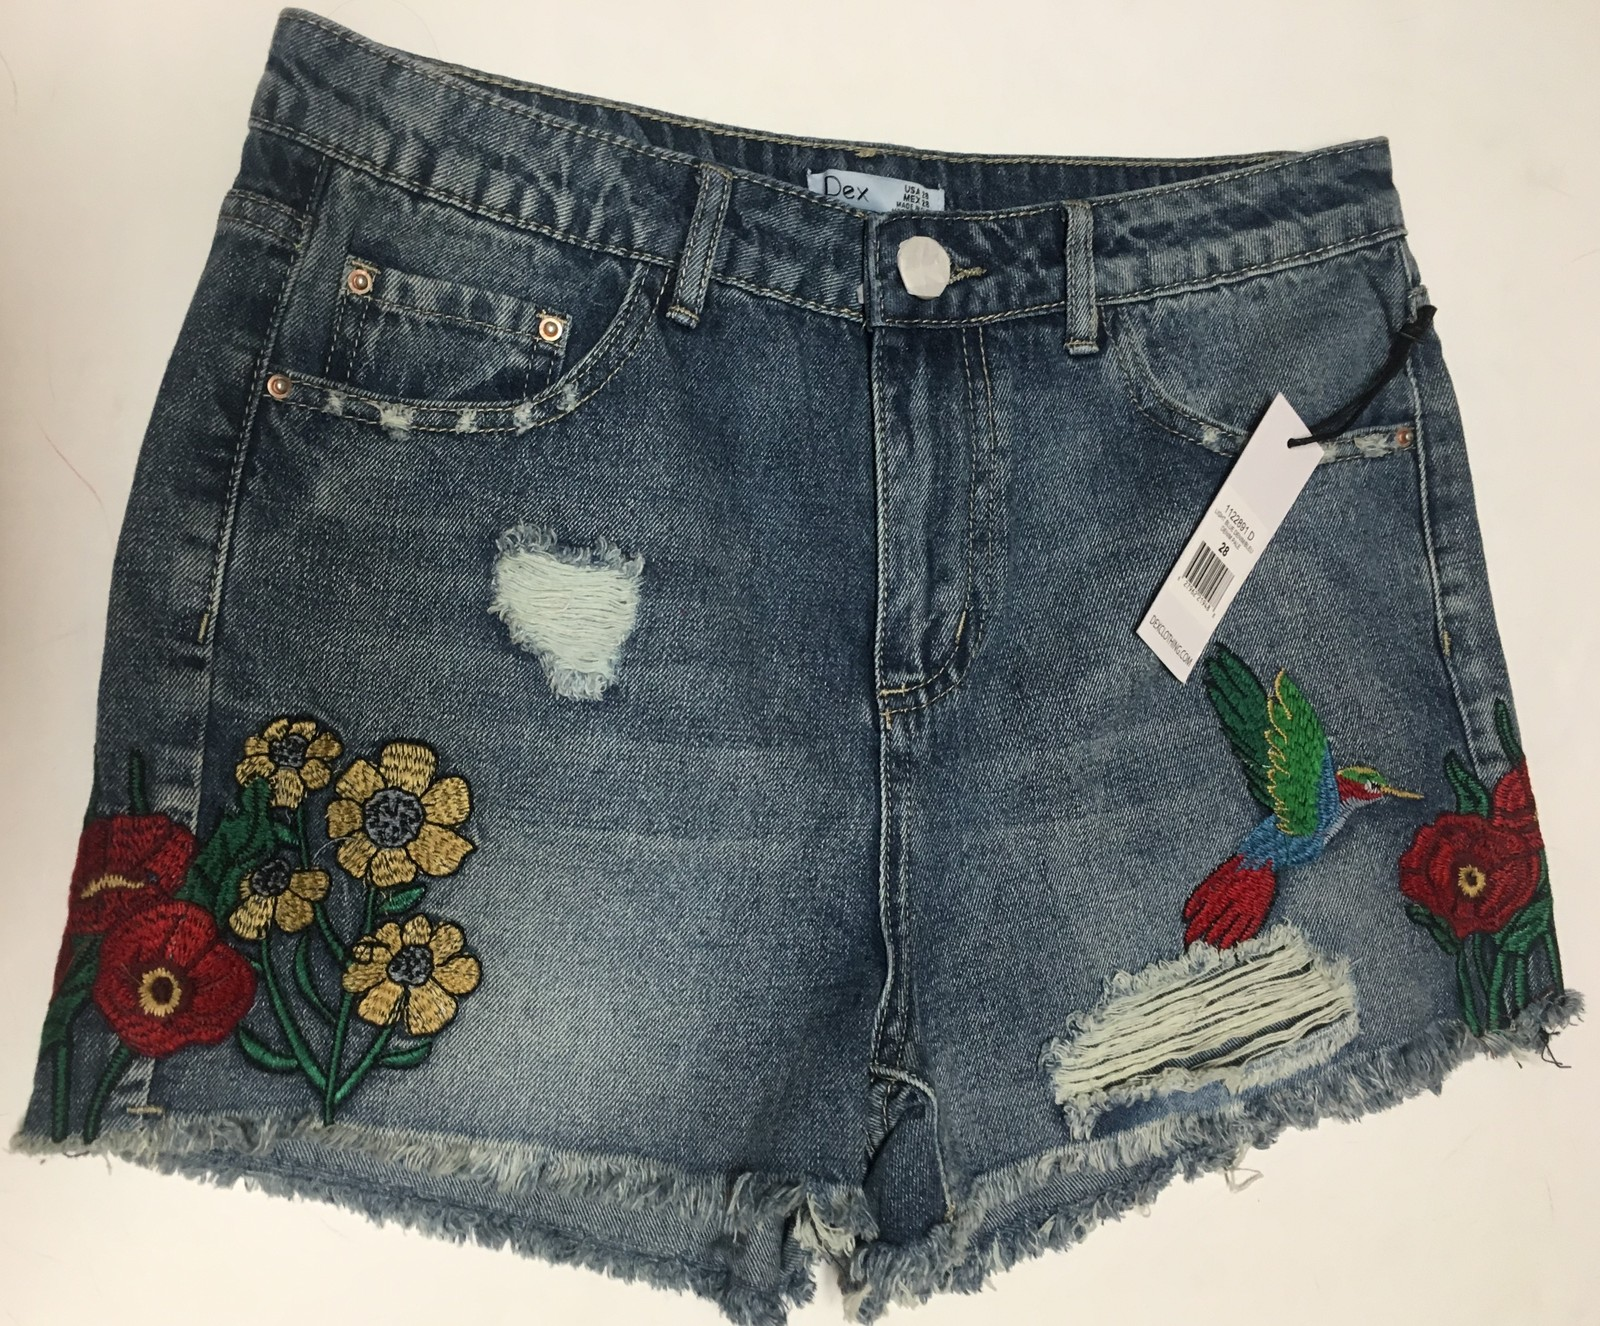 DEX Jean Shorts Embroidered Hummingbird Floral Distressed Sz 28 image 3